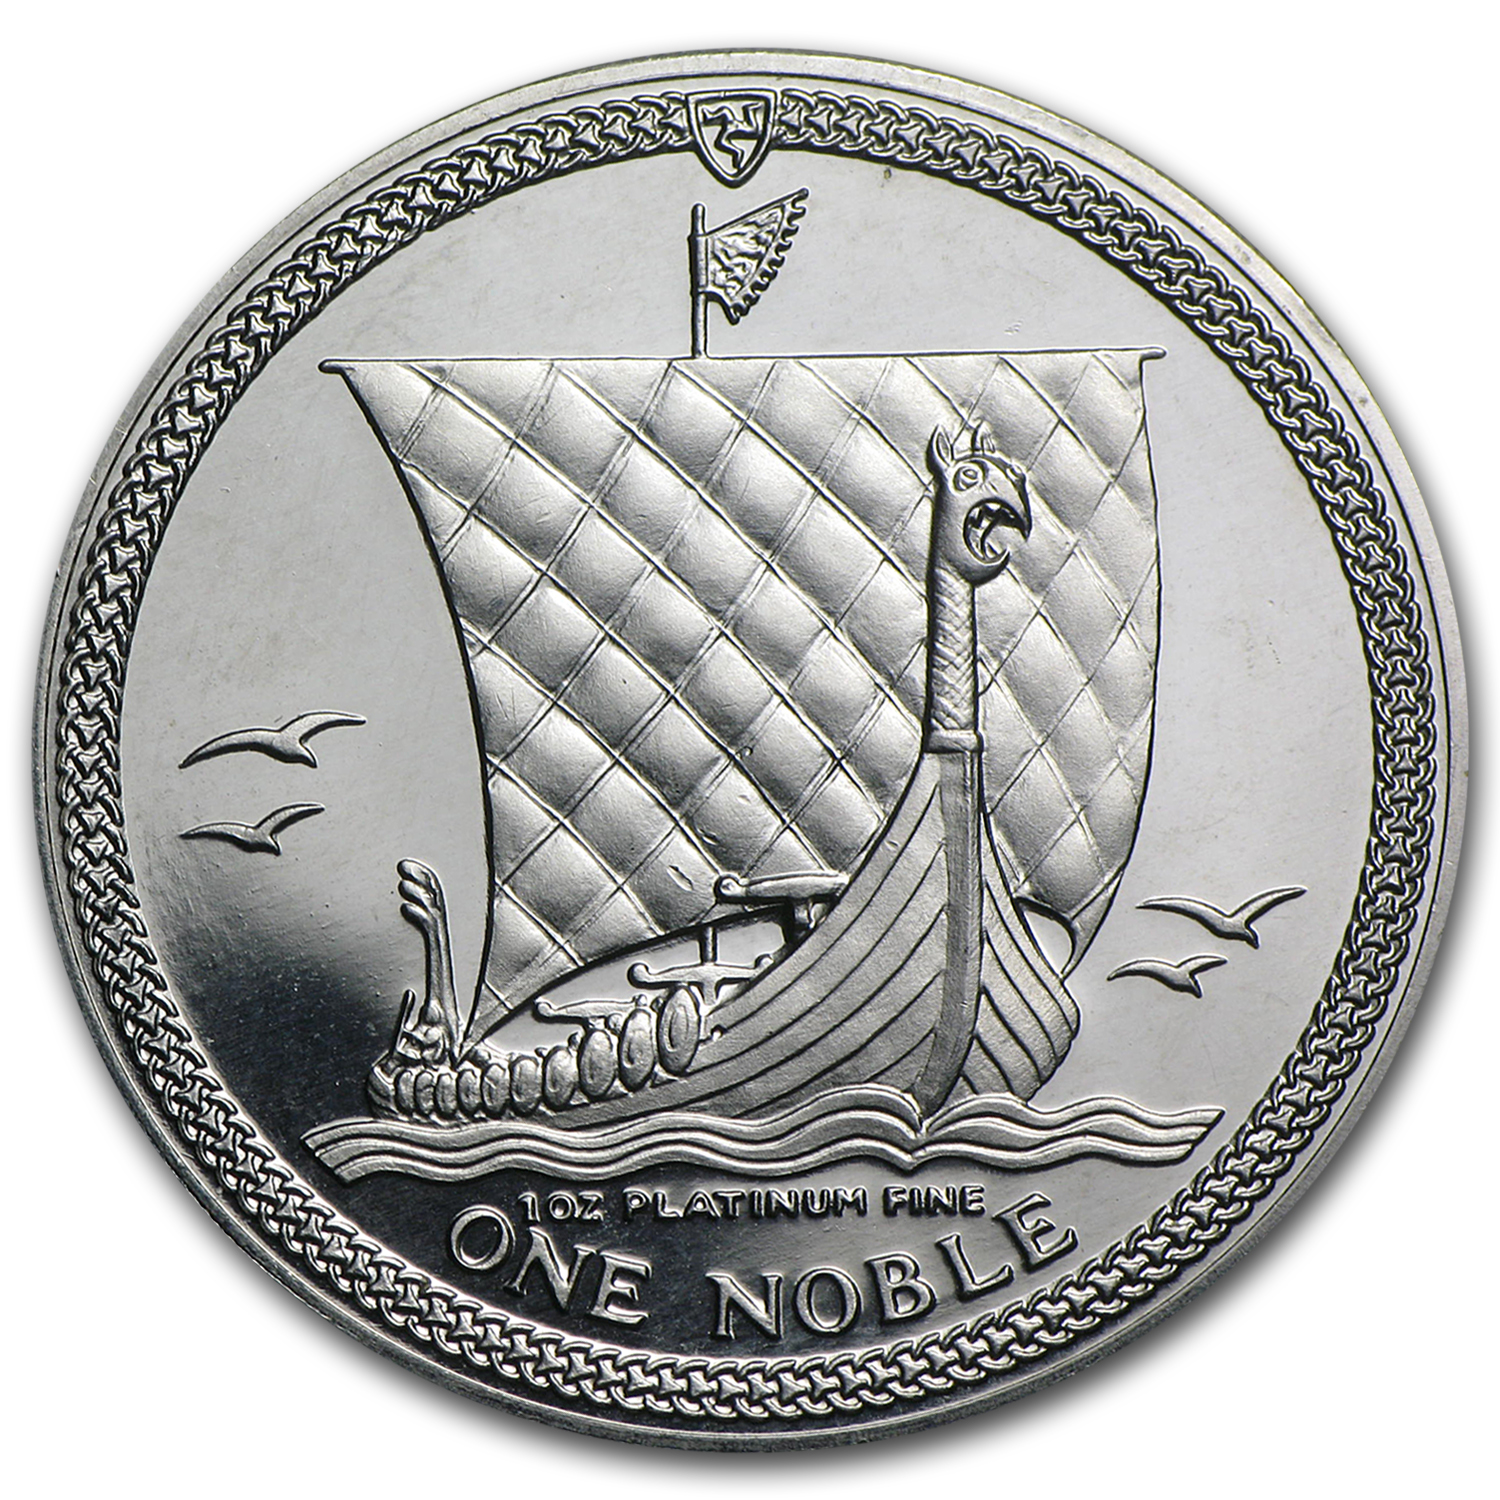 1 oz Isle of Man Platinum Noble Proof